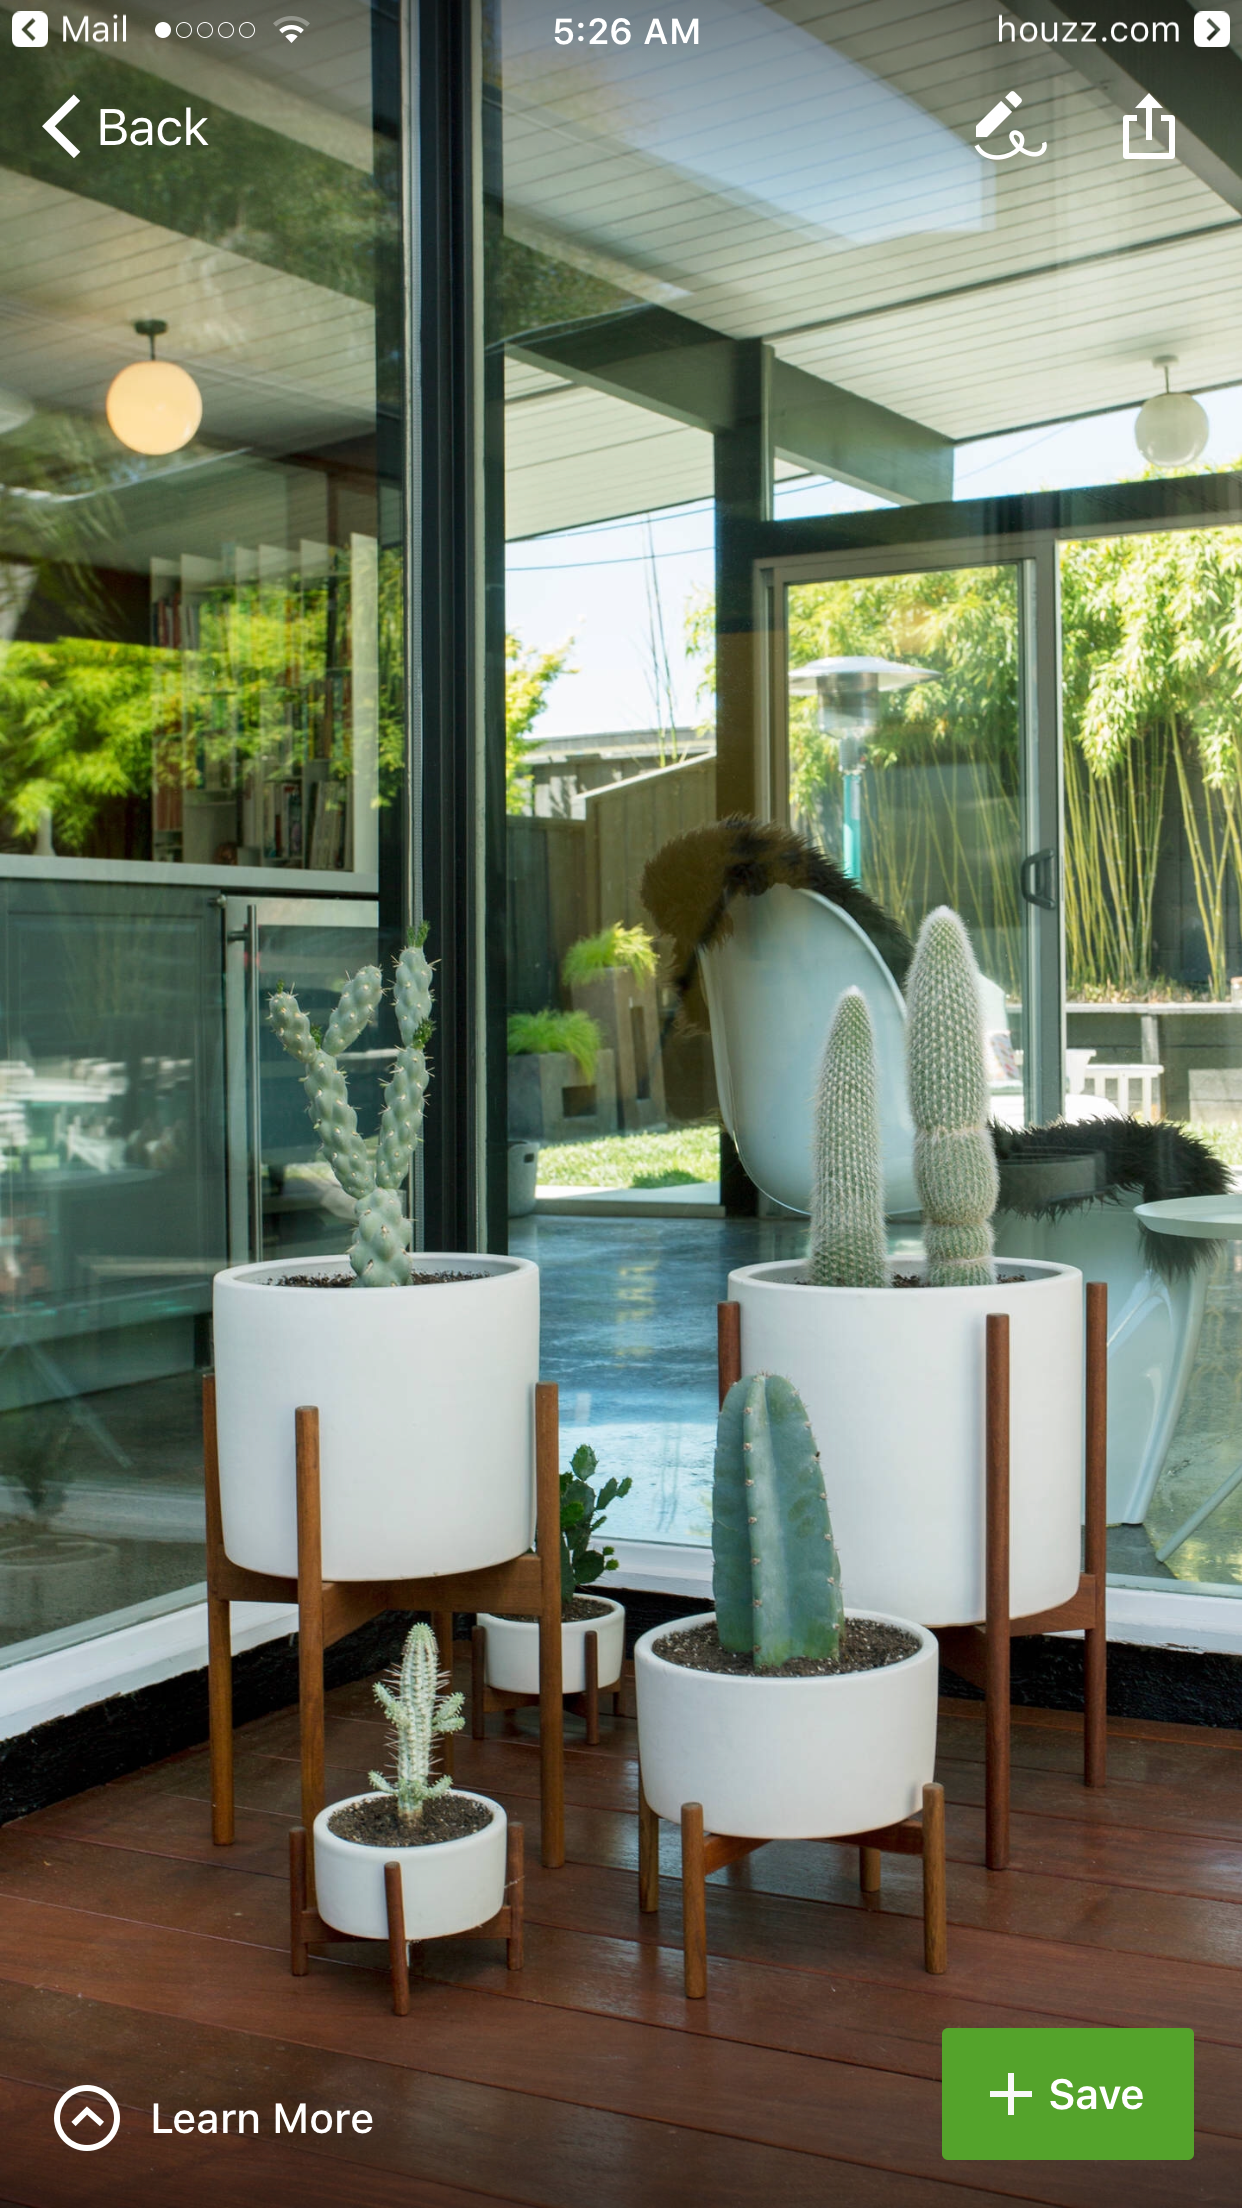 Pin by j l walker on living space | Houzz interior design ... on Houzz Outdoor Living Spaces id=12431